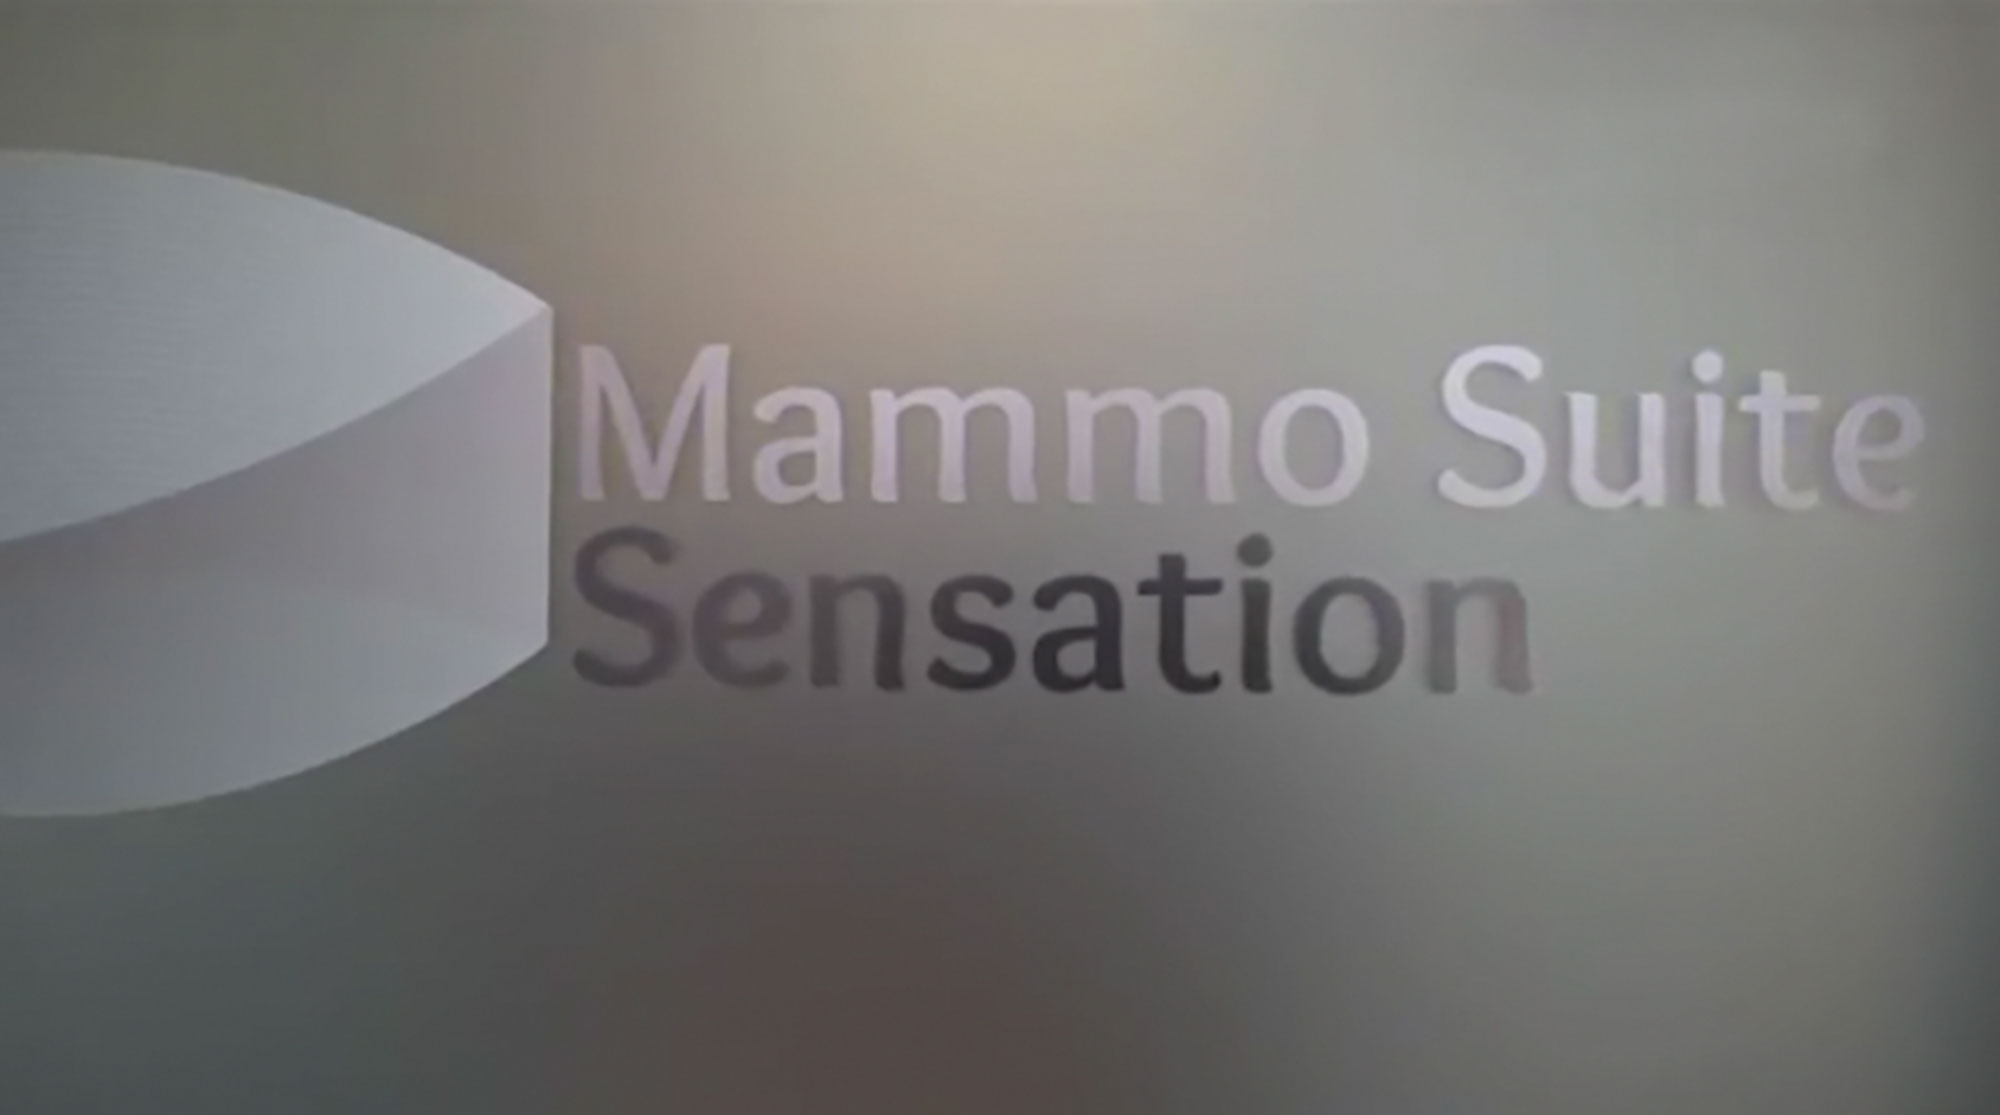 Mammo suite sensation